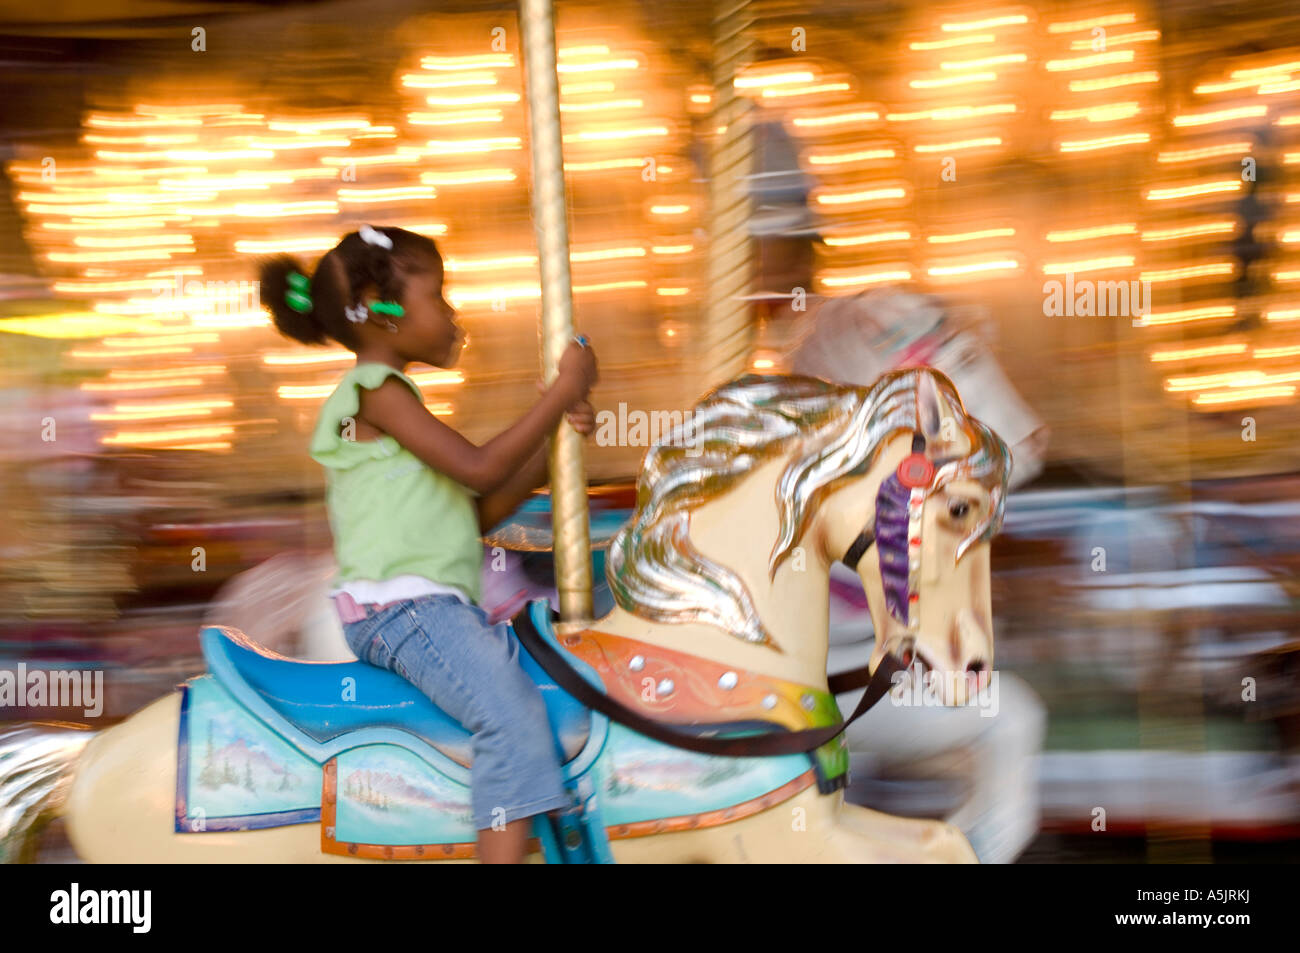 Girl on a ride at the Illinois State Fair in Springfield Illinois - Stock Image